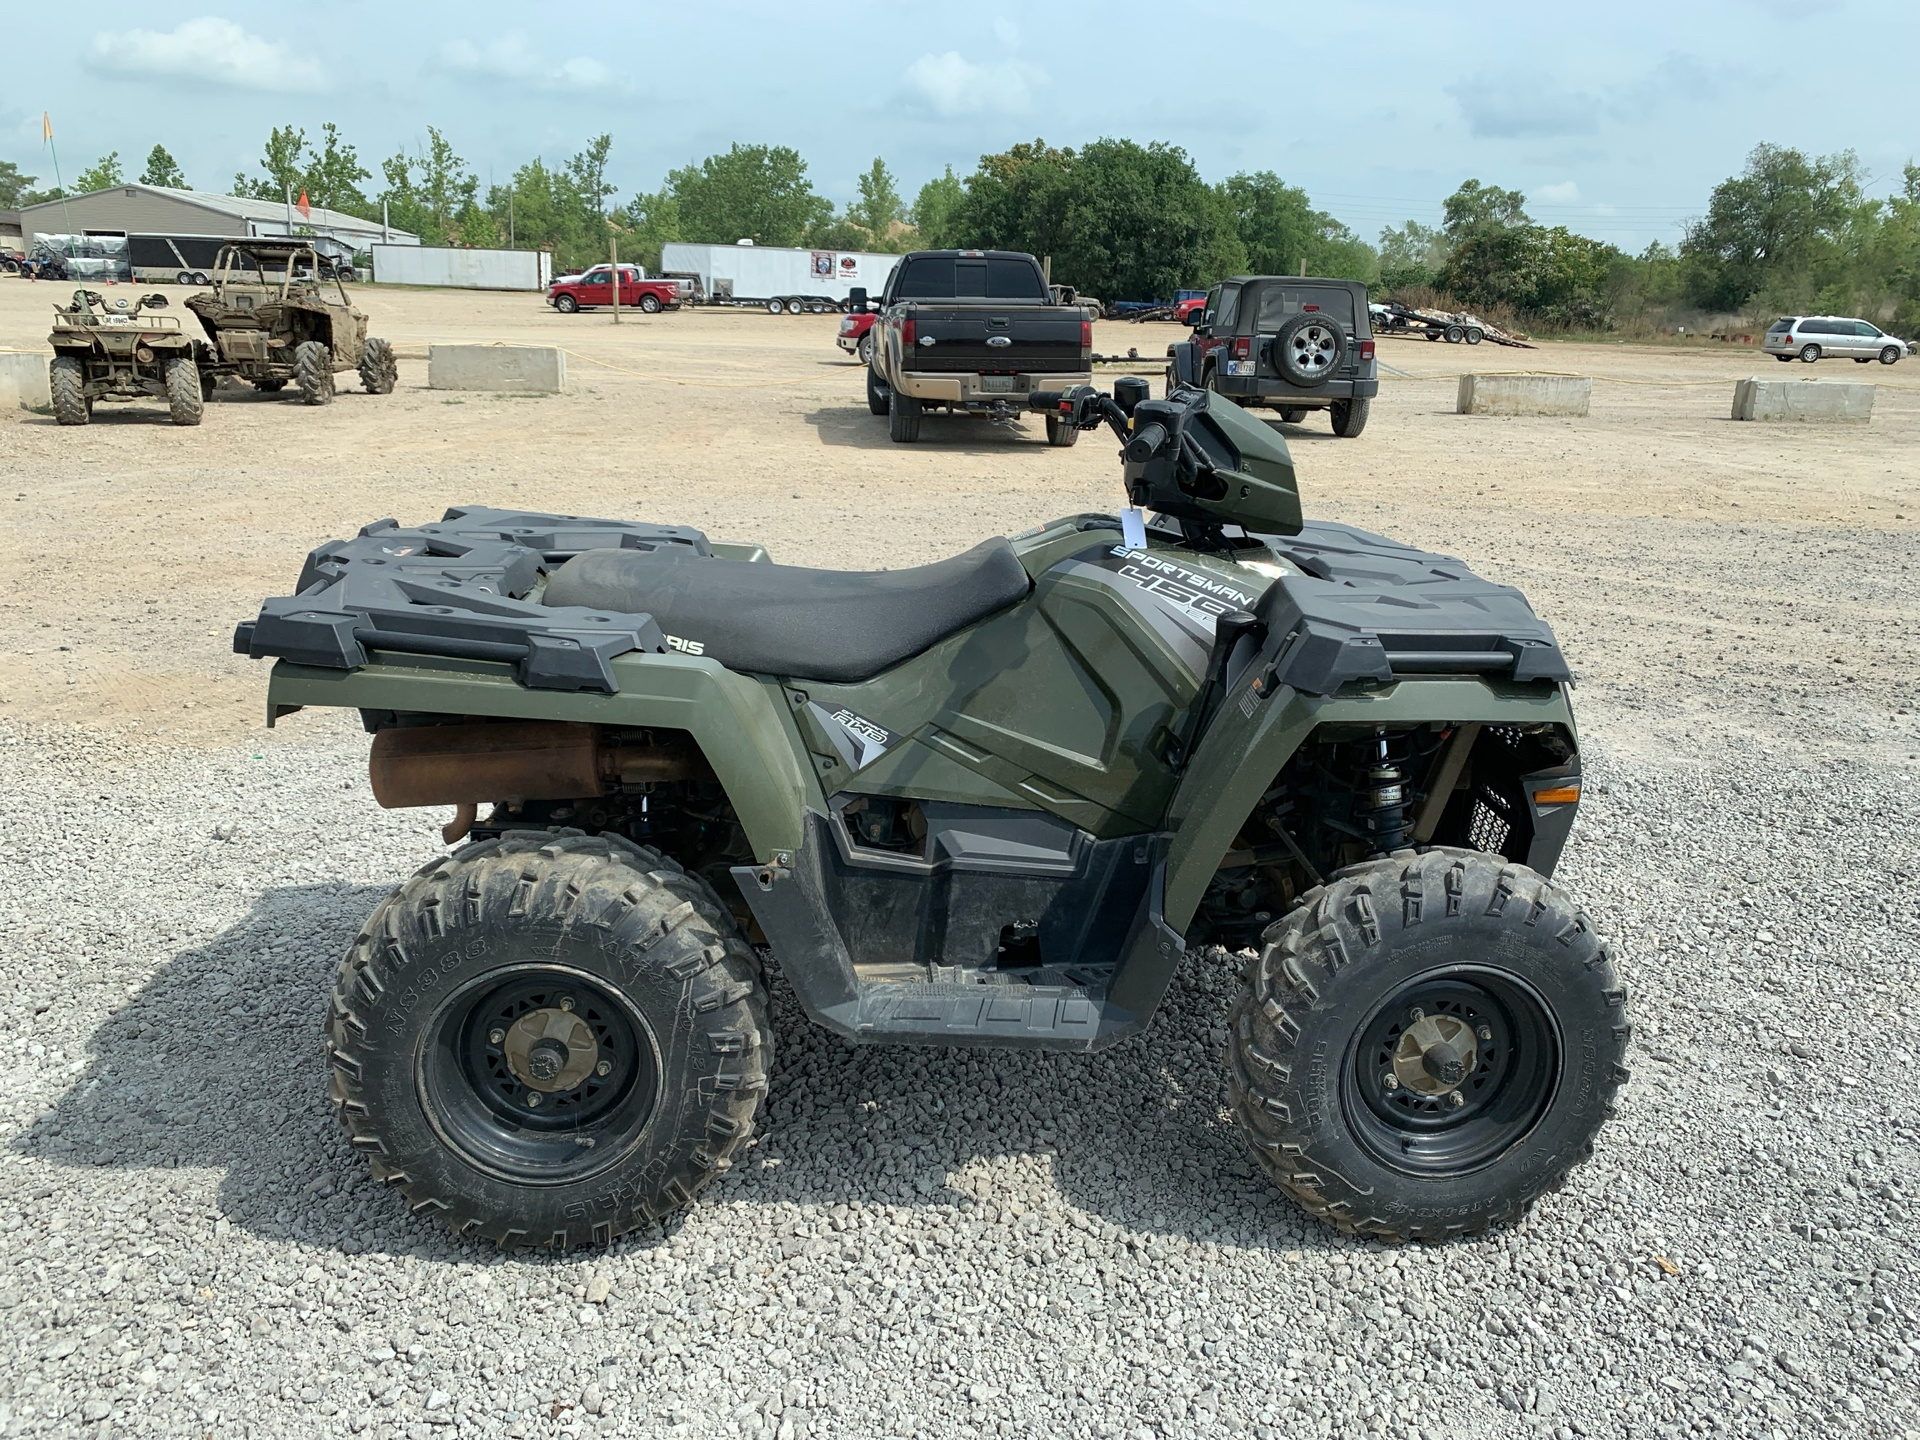 2018 Polaris Sportsman 450 H.O. in Attica, Indiana - Photo 4